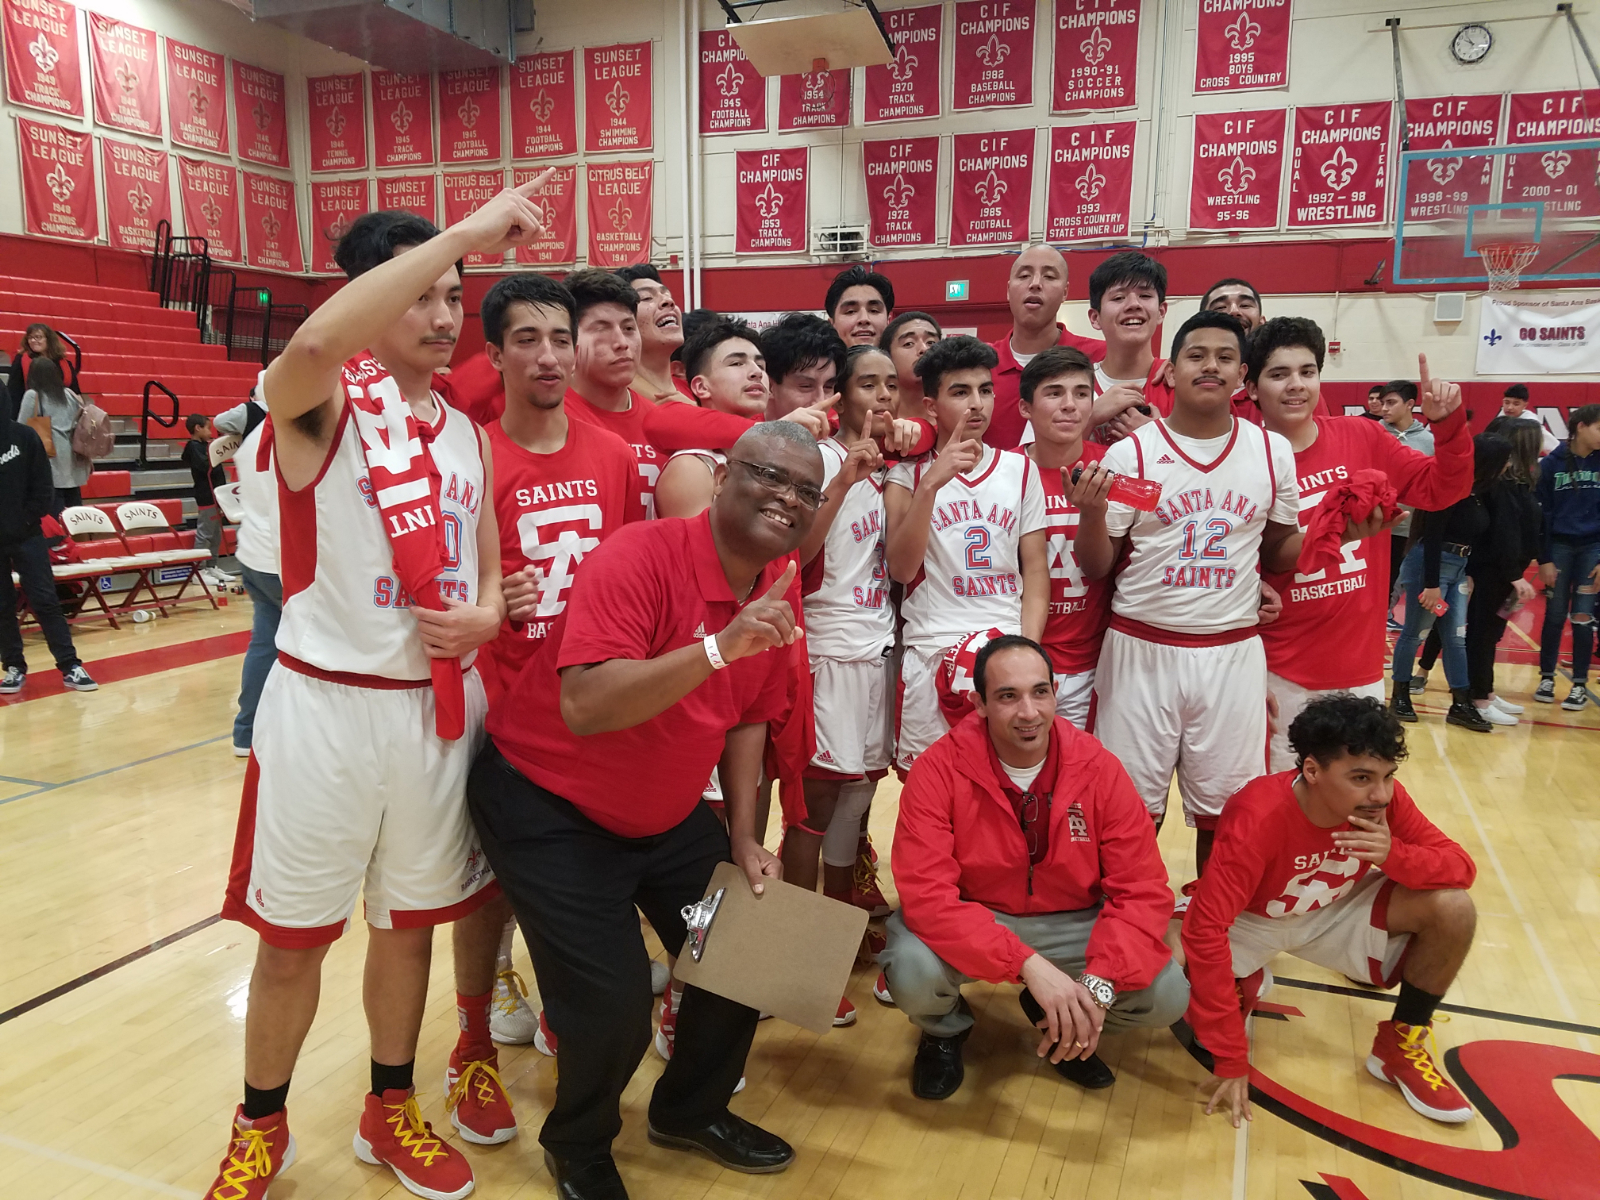 Boys basketball moves on to 2nd round with win over Tarbut 'V Torah